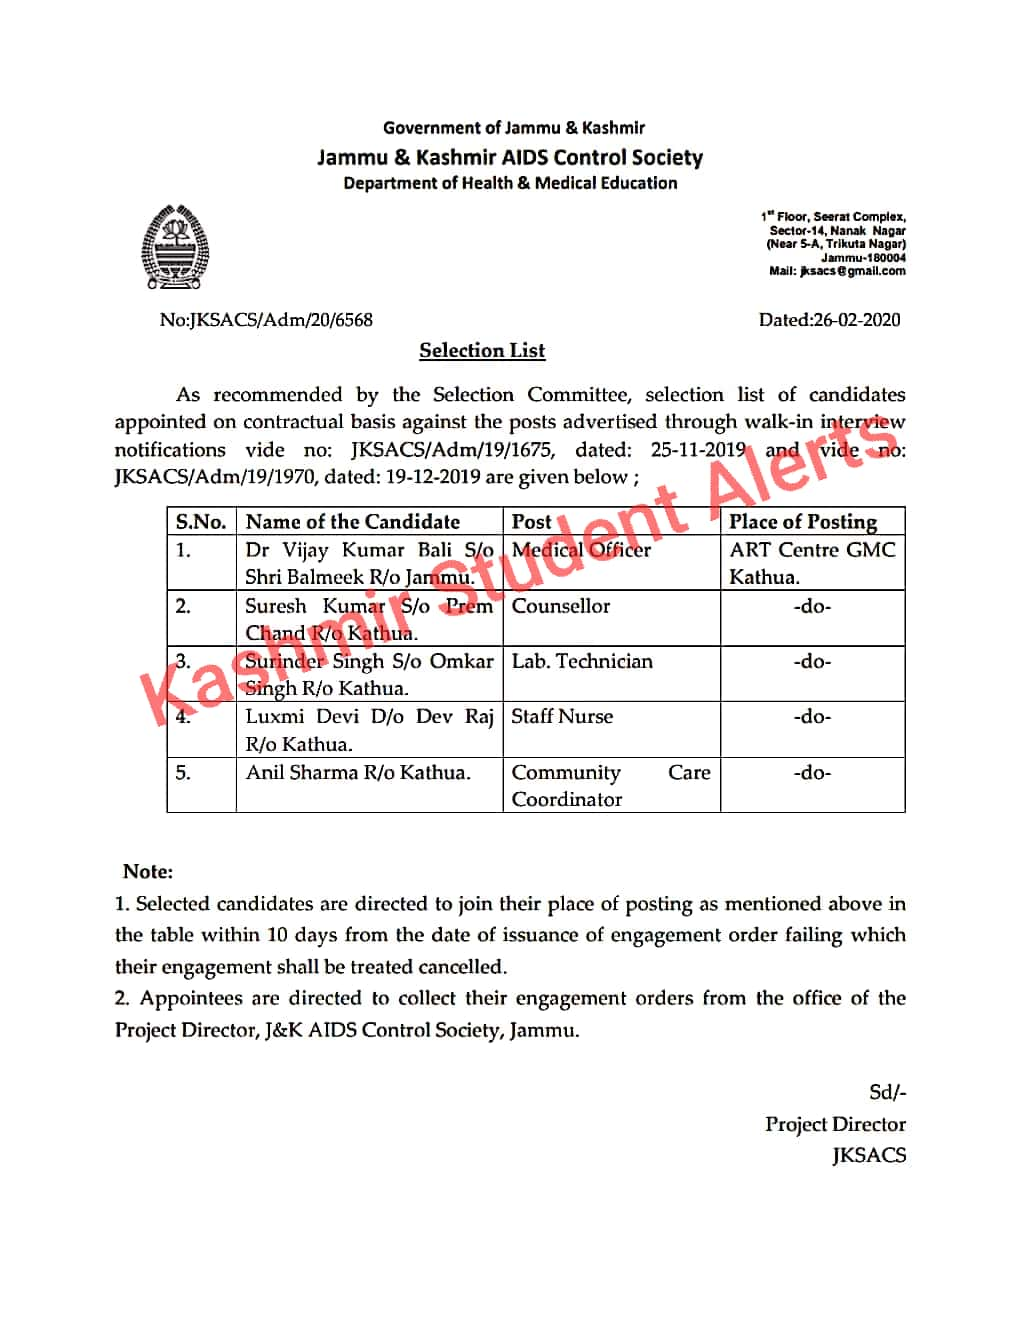 J K Aids Control Society Selection List Of Candidates For